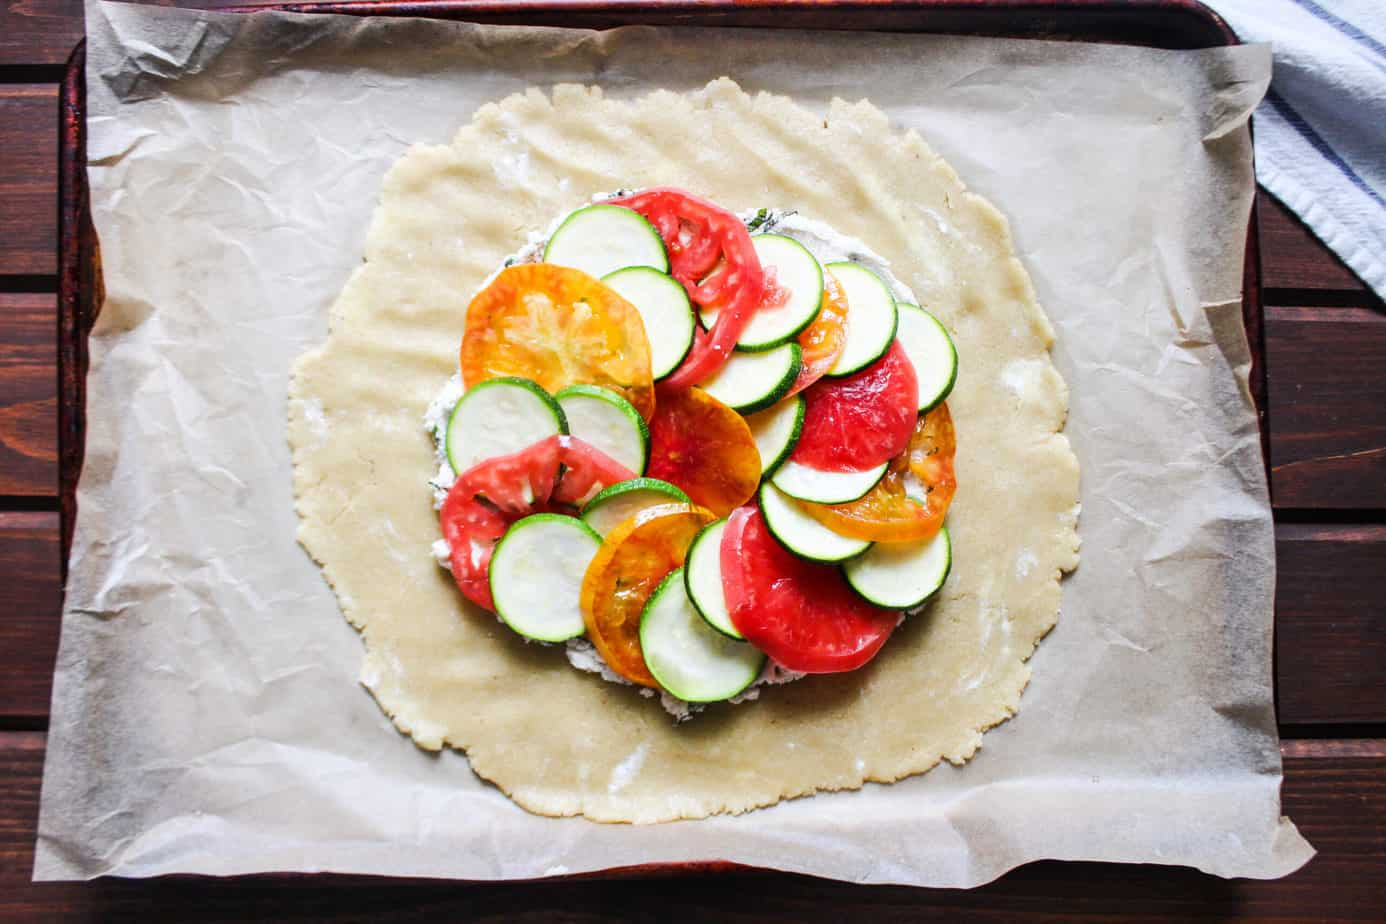 galette pastry dough with zucchini and tomatoes